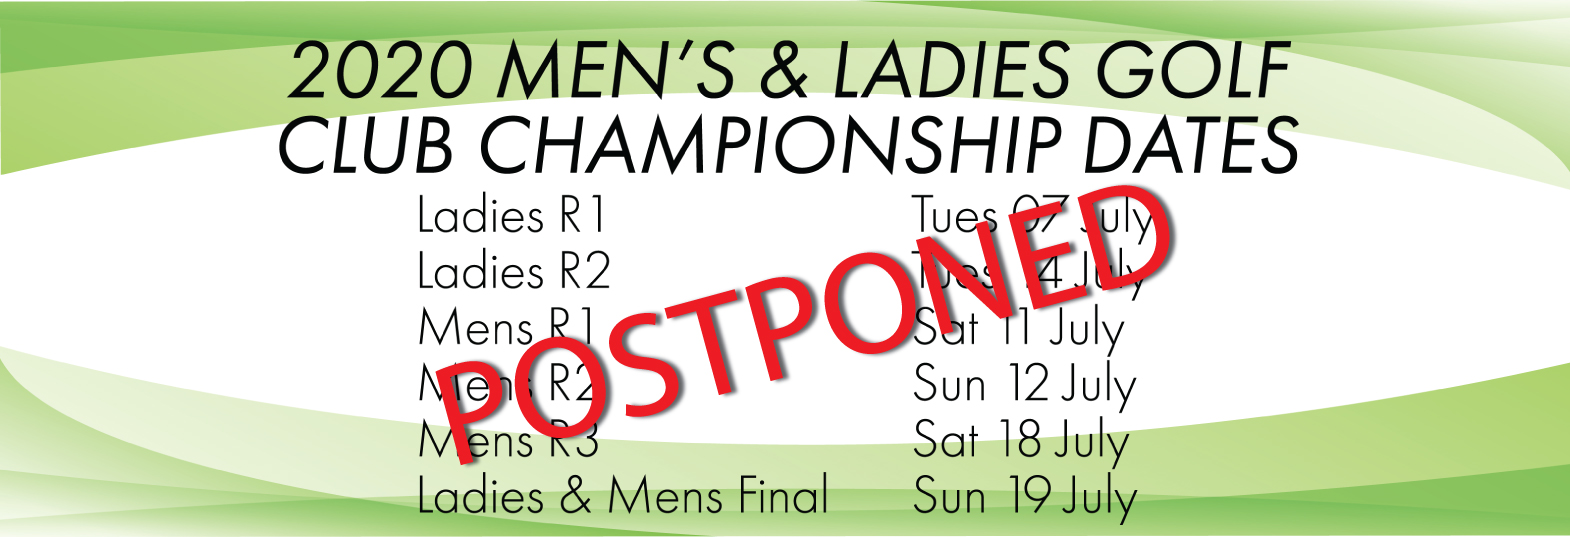 Club-Championship-Dates-2020-POSTPONED-BANNER